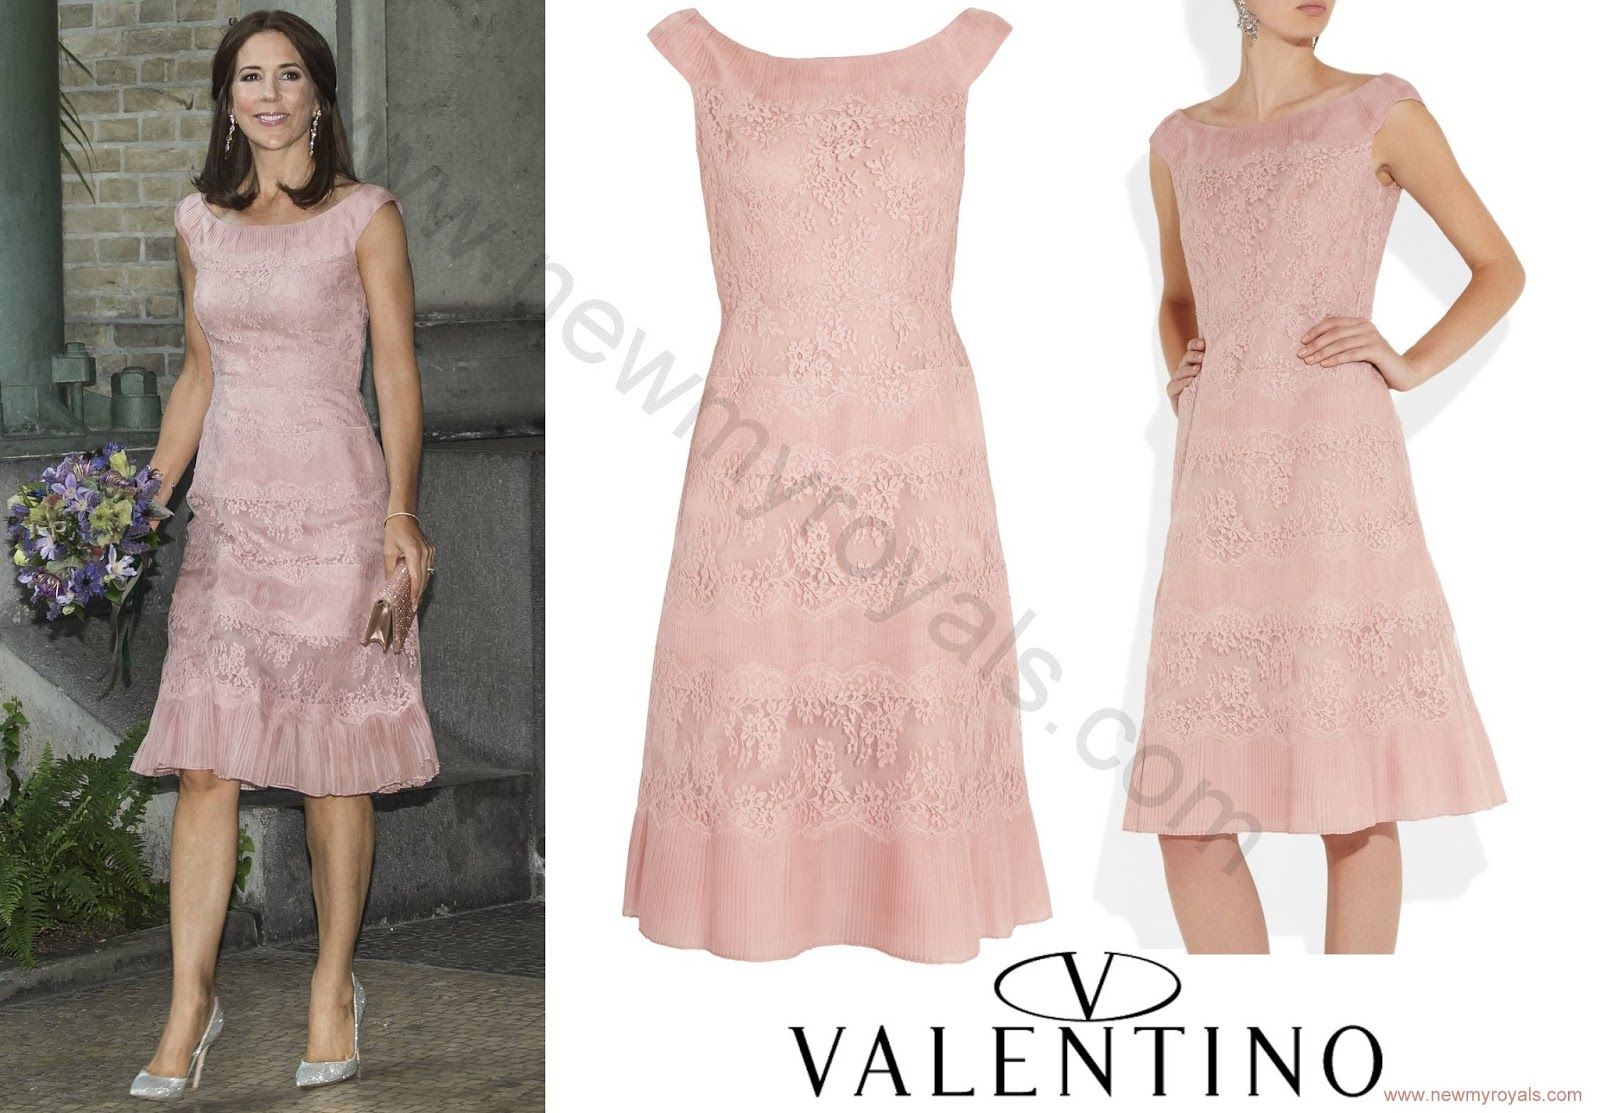 Princess Mary in Valentino Lace & Pleated Silk Dress | Newmyroyals ...